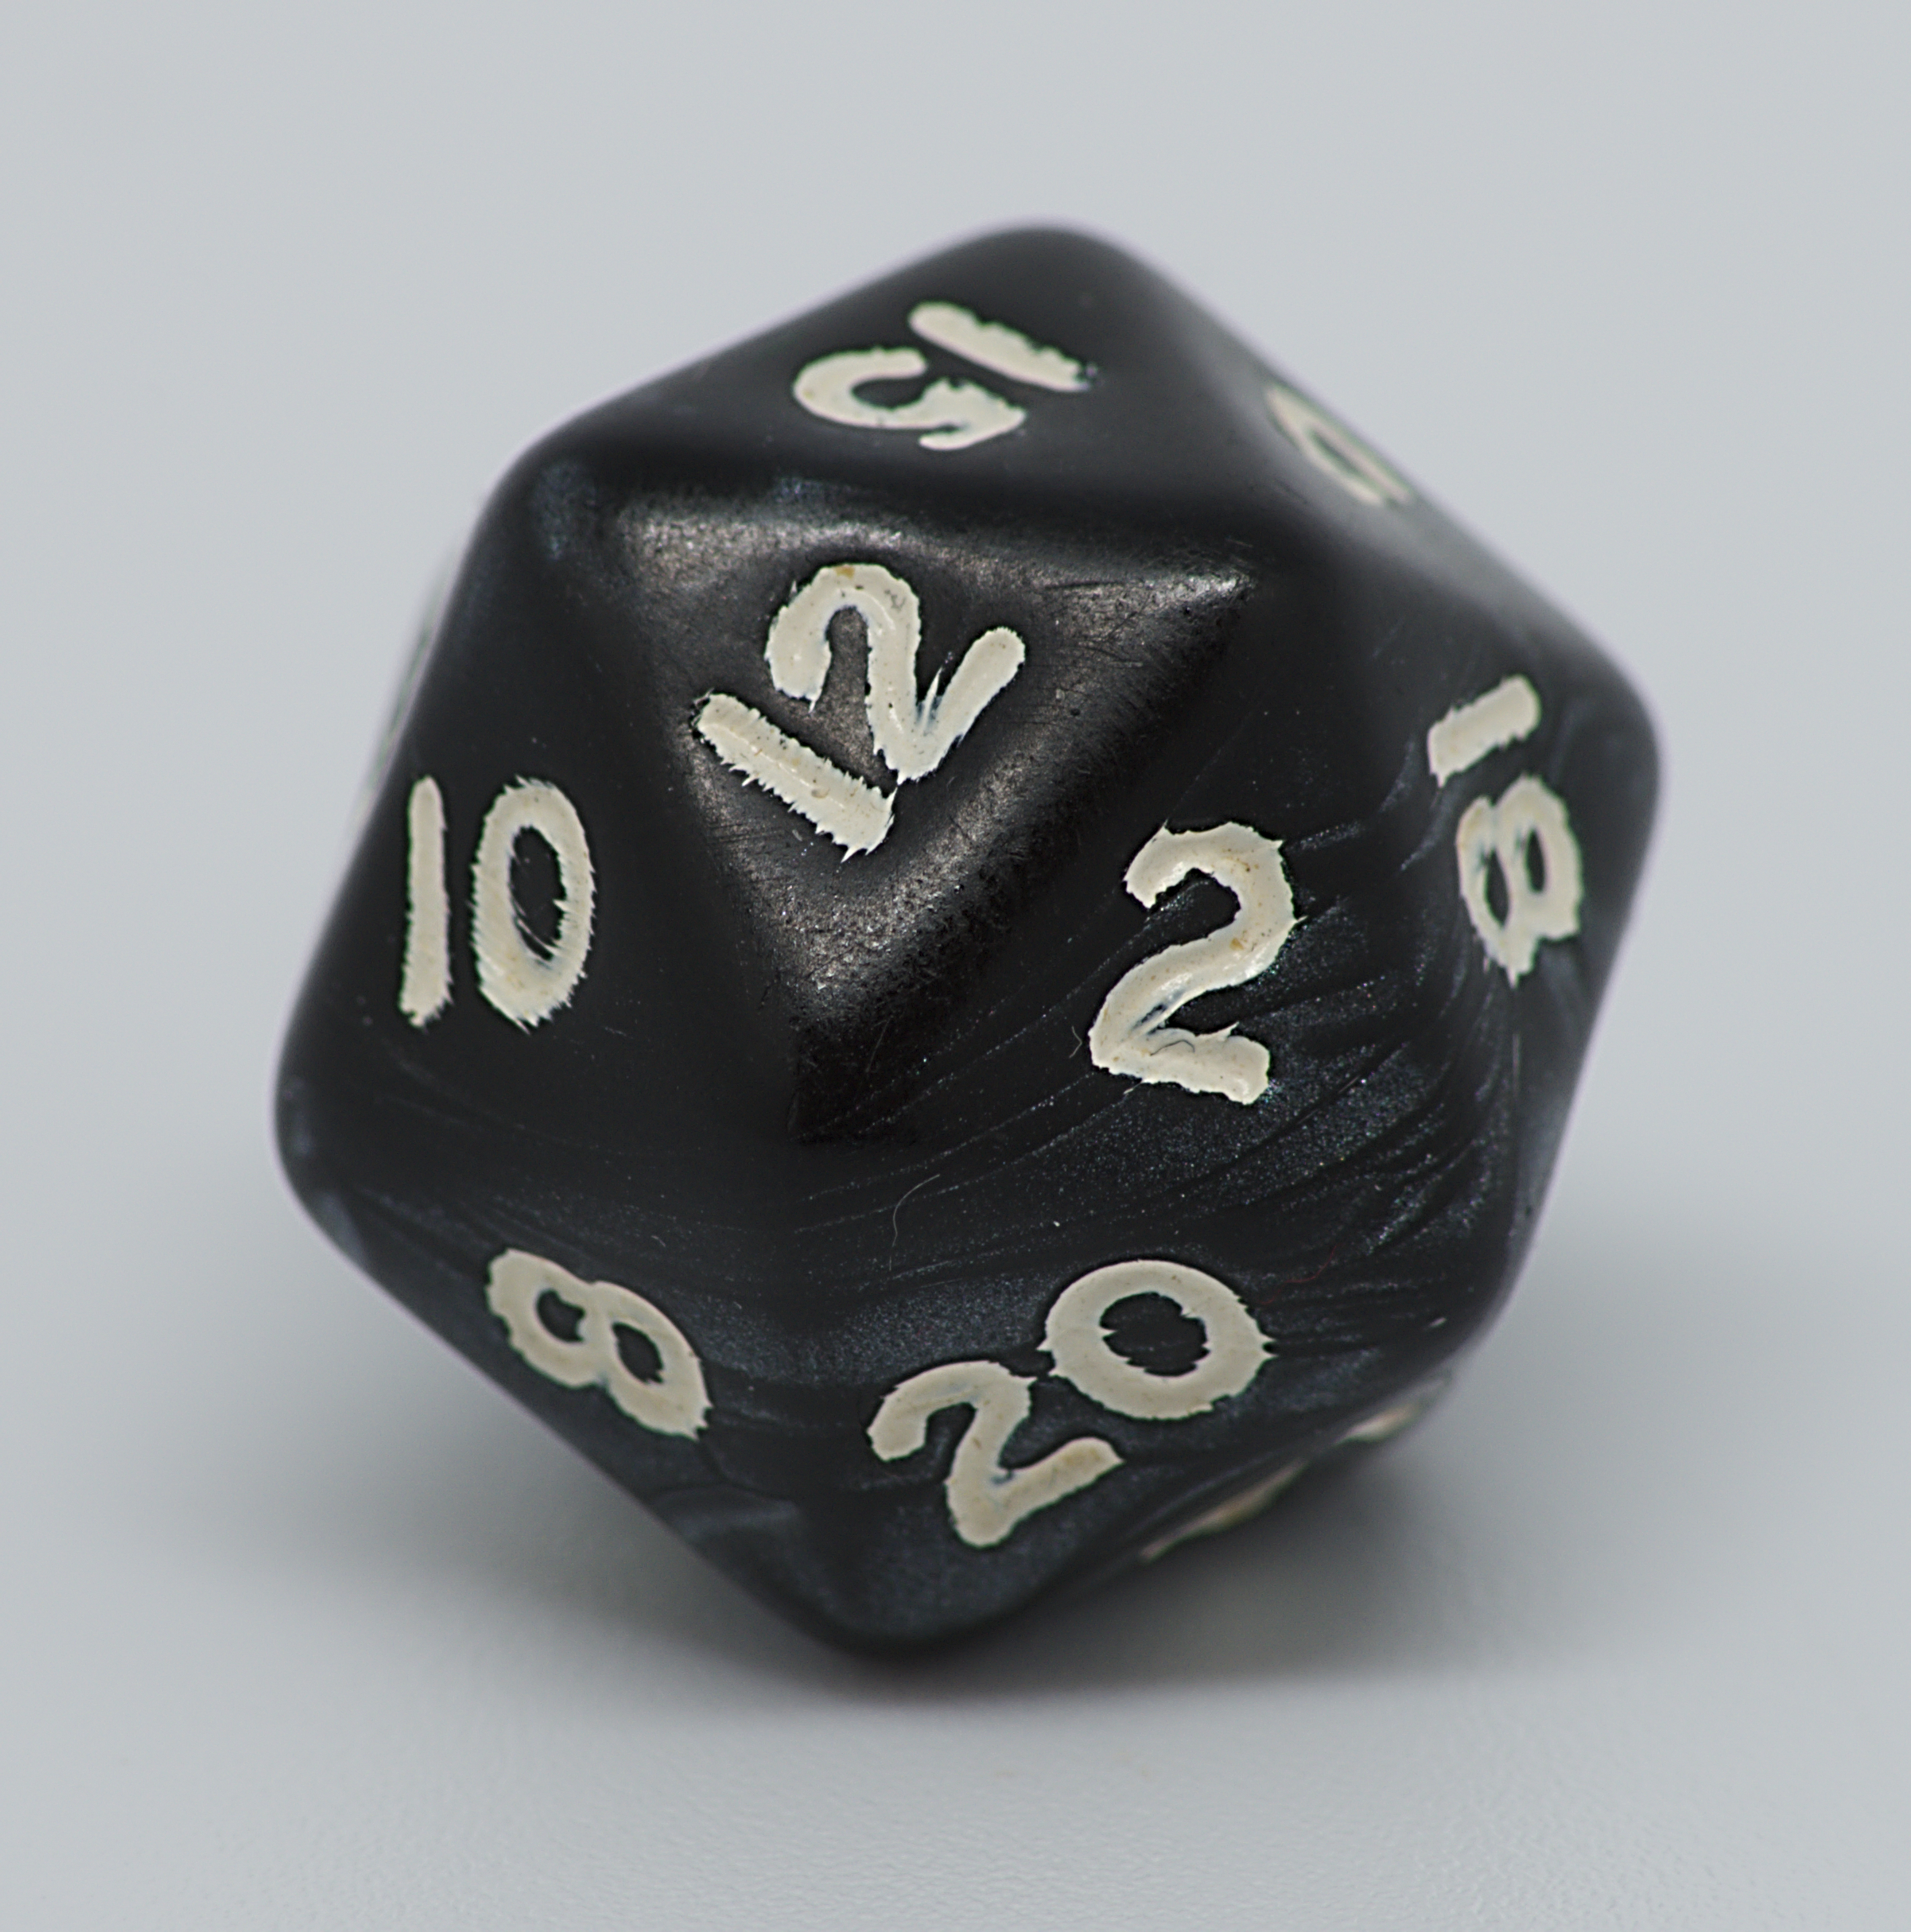 21 sided die